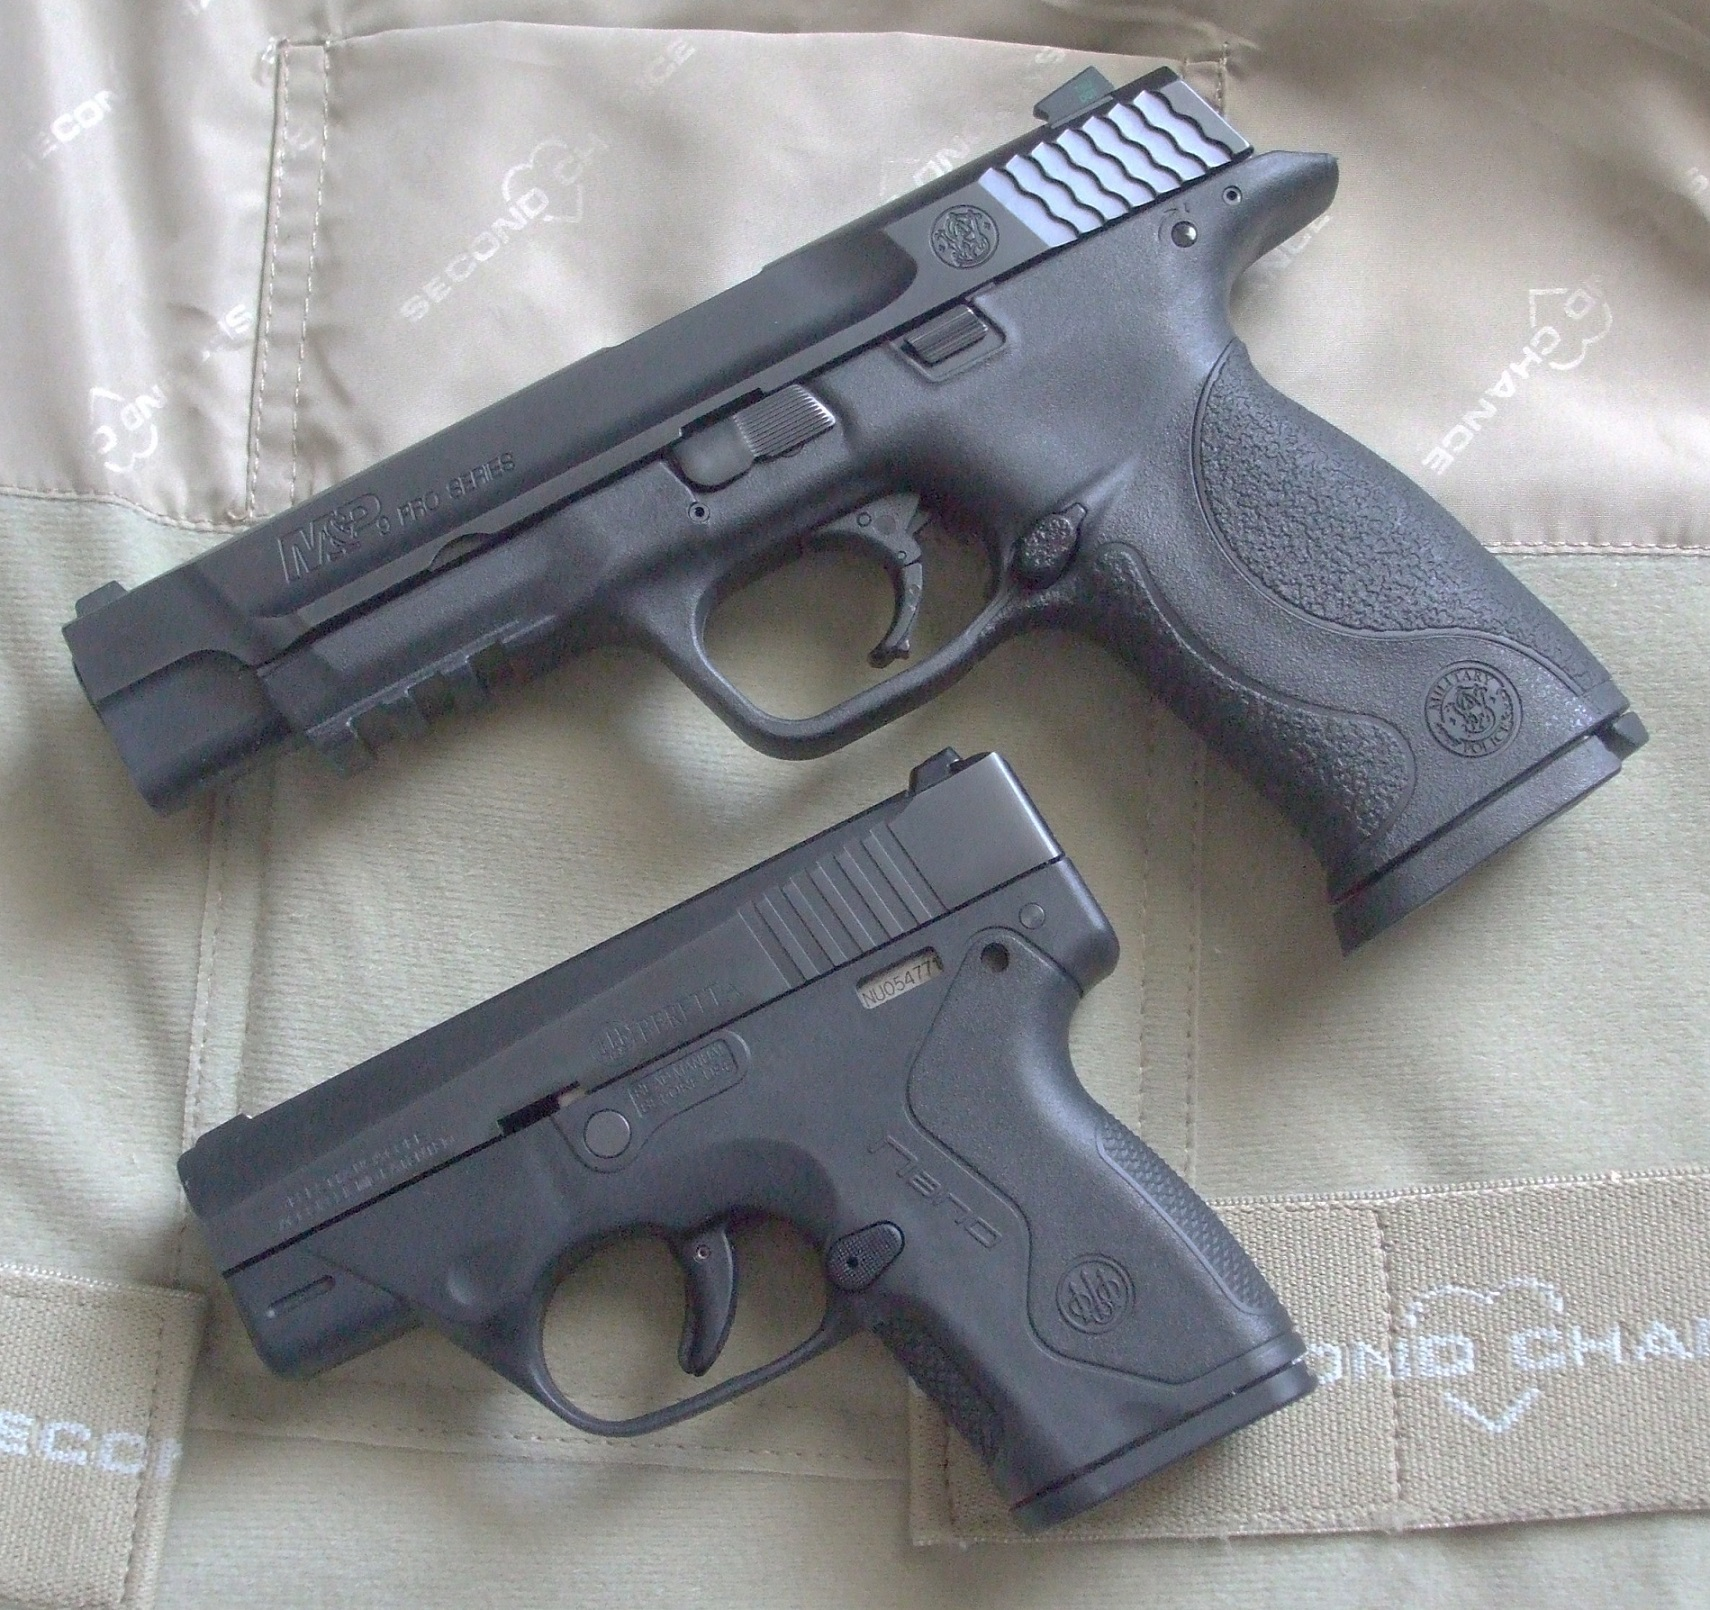 Safe, reliable pistols without manual safeties abound. One less thing to go wrong! Photo: author